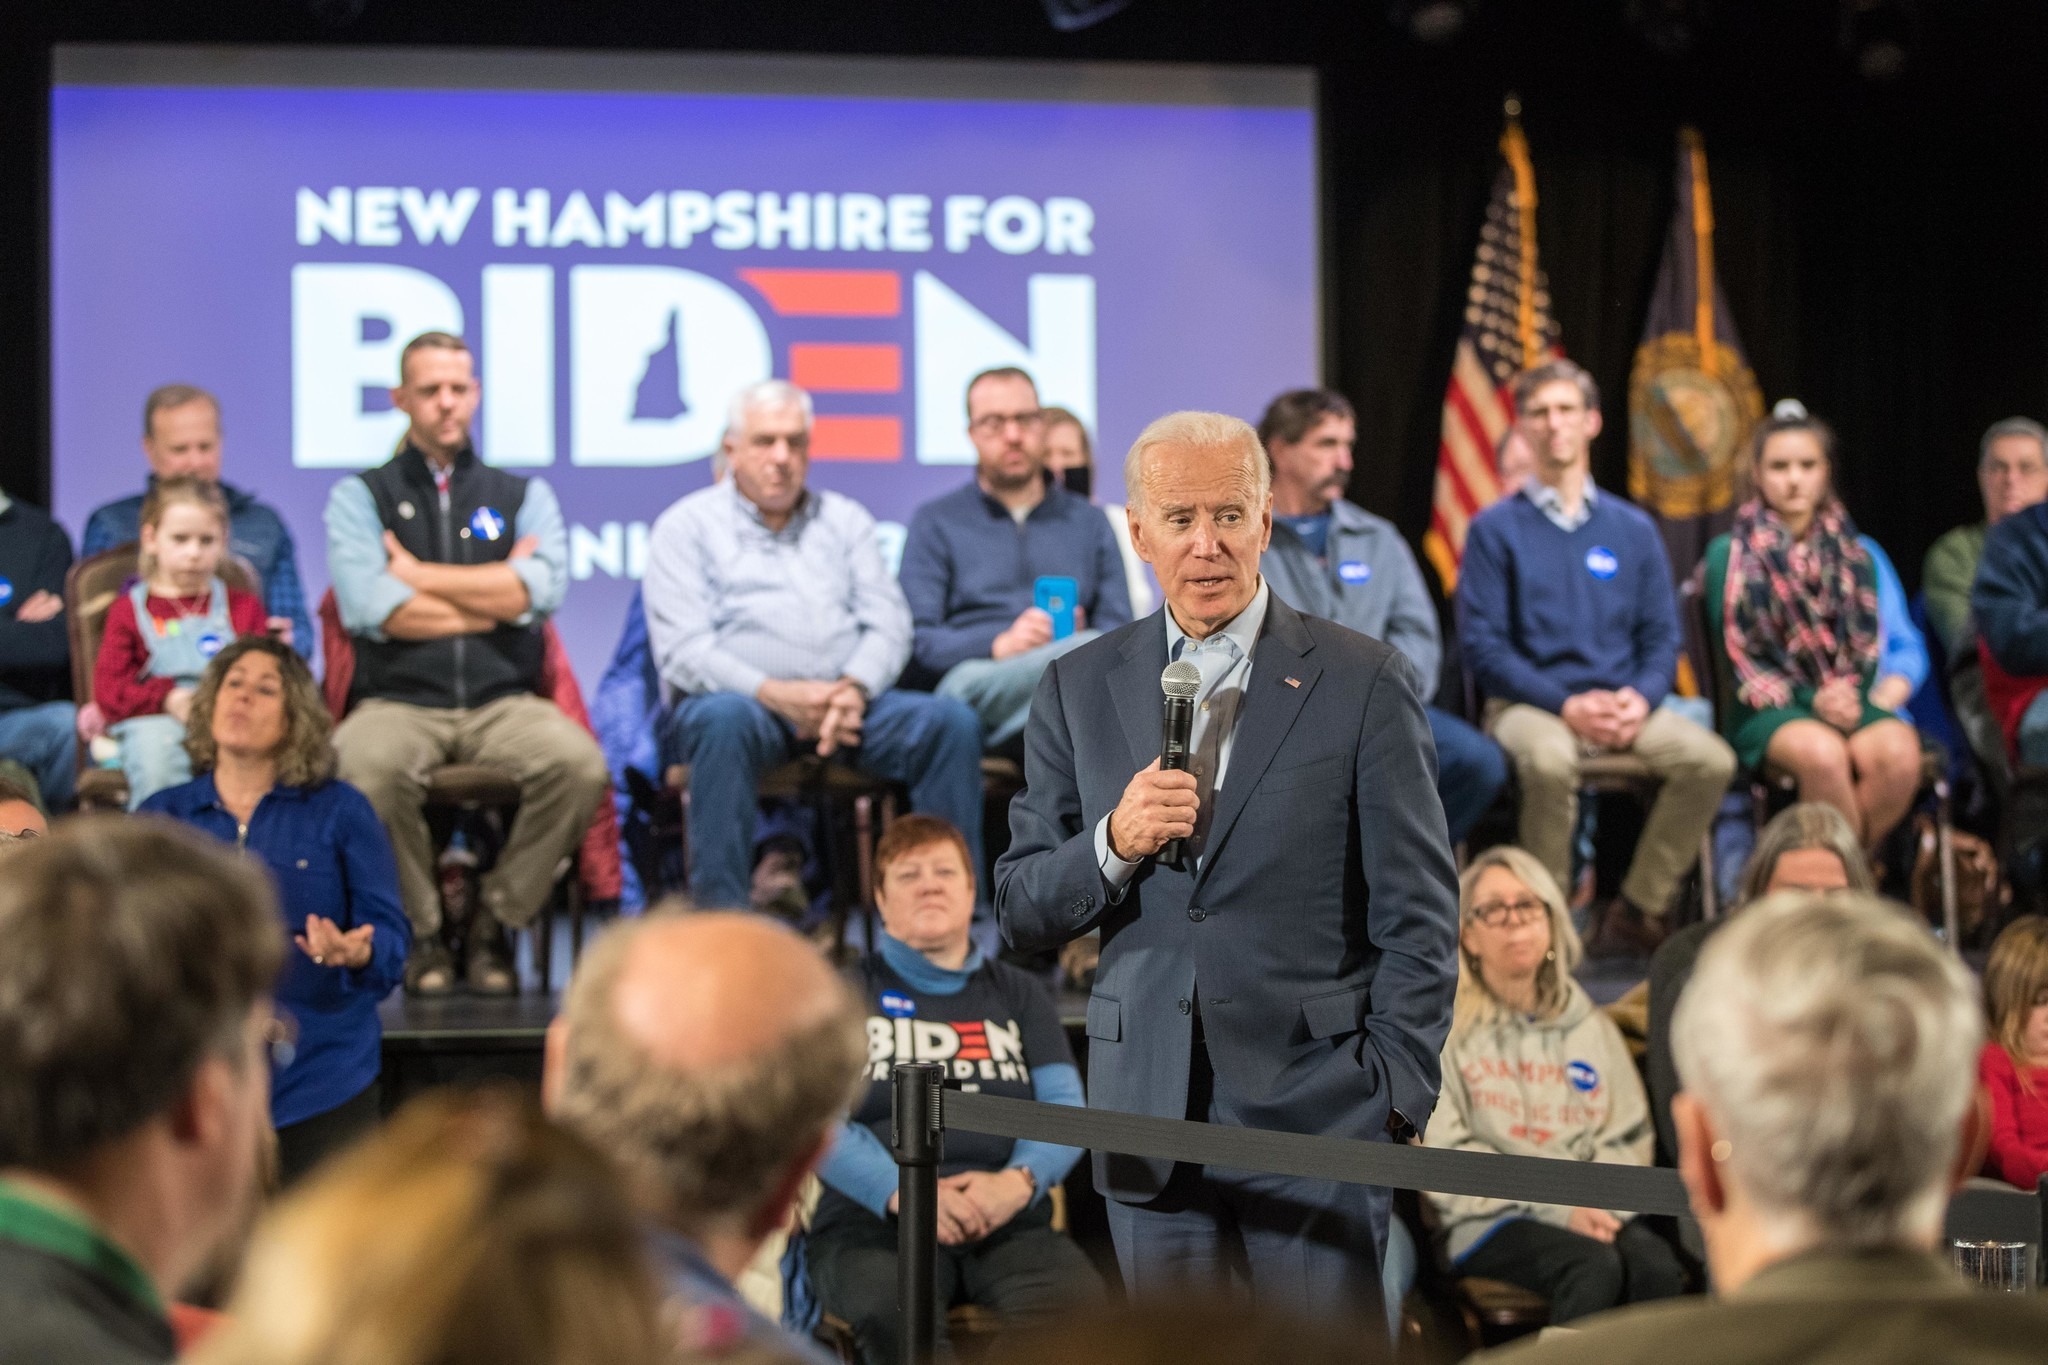 Joe Biden tells New Hampshire voters that impeachment attacks show GOP fears him — but Trump's lawyers didn't mention his name